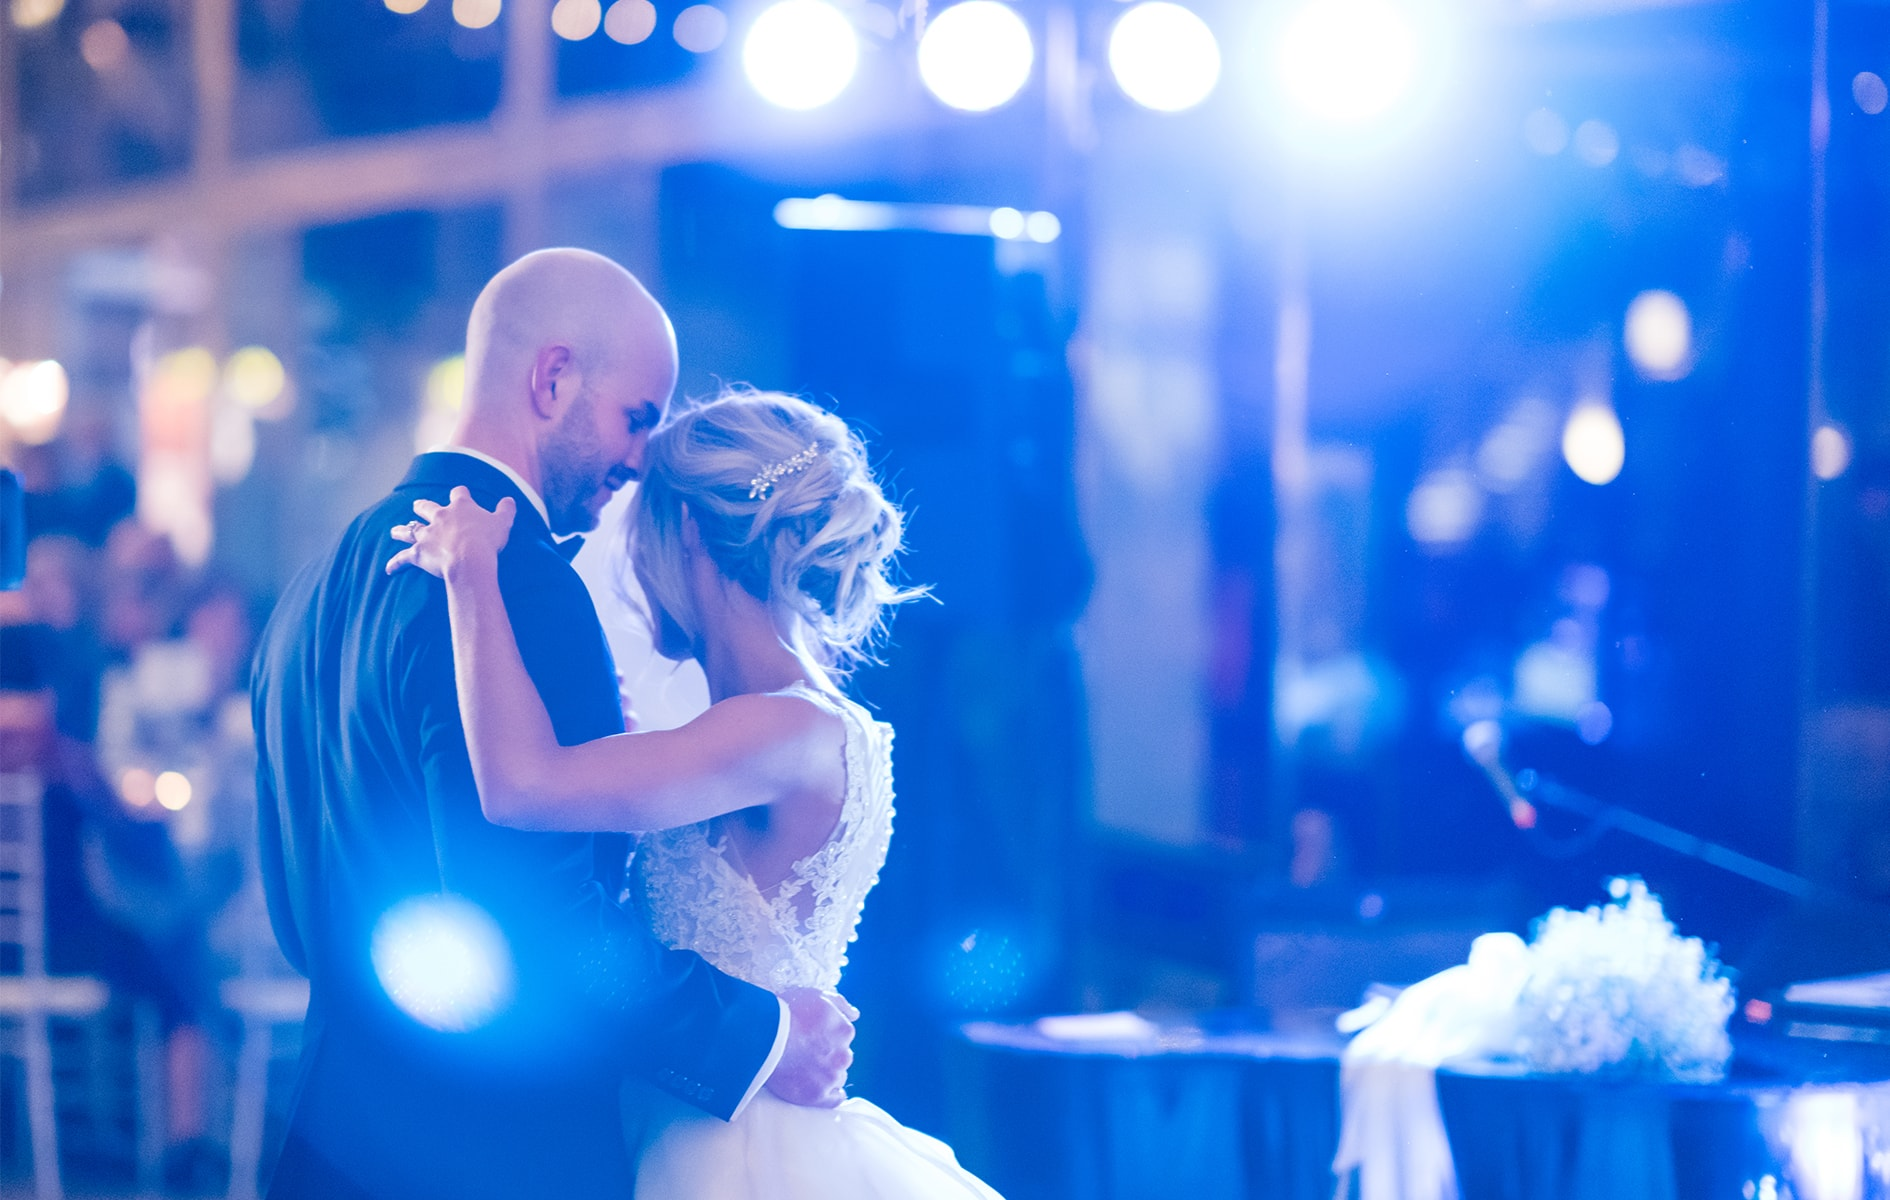 bride and groom dancing under lights at wedding